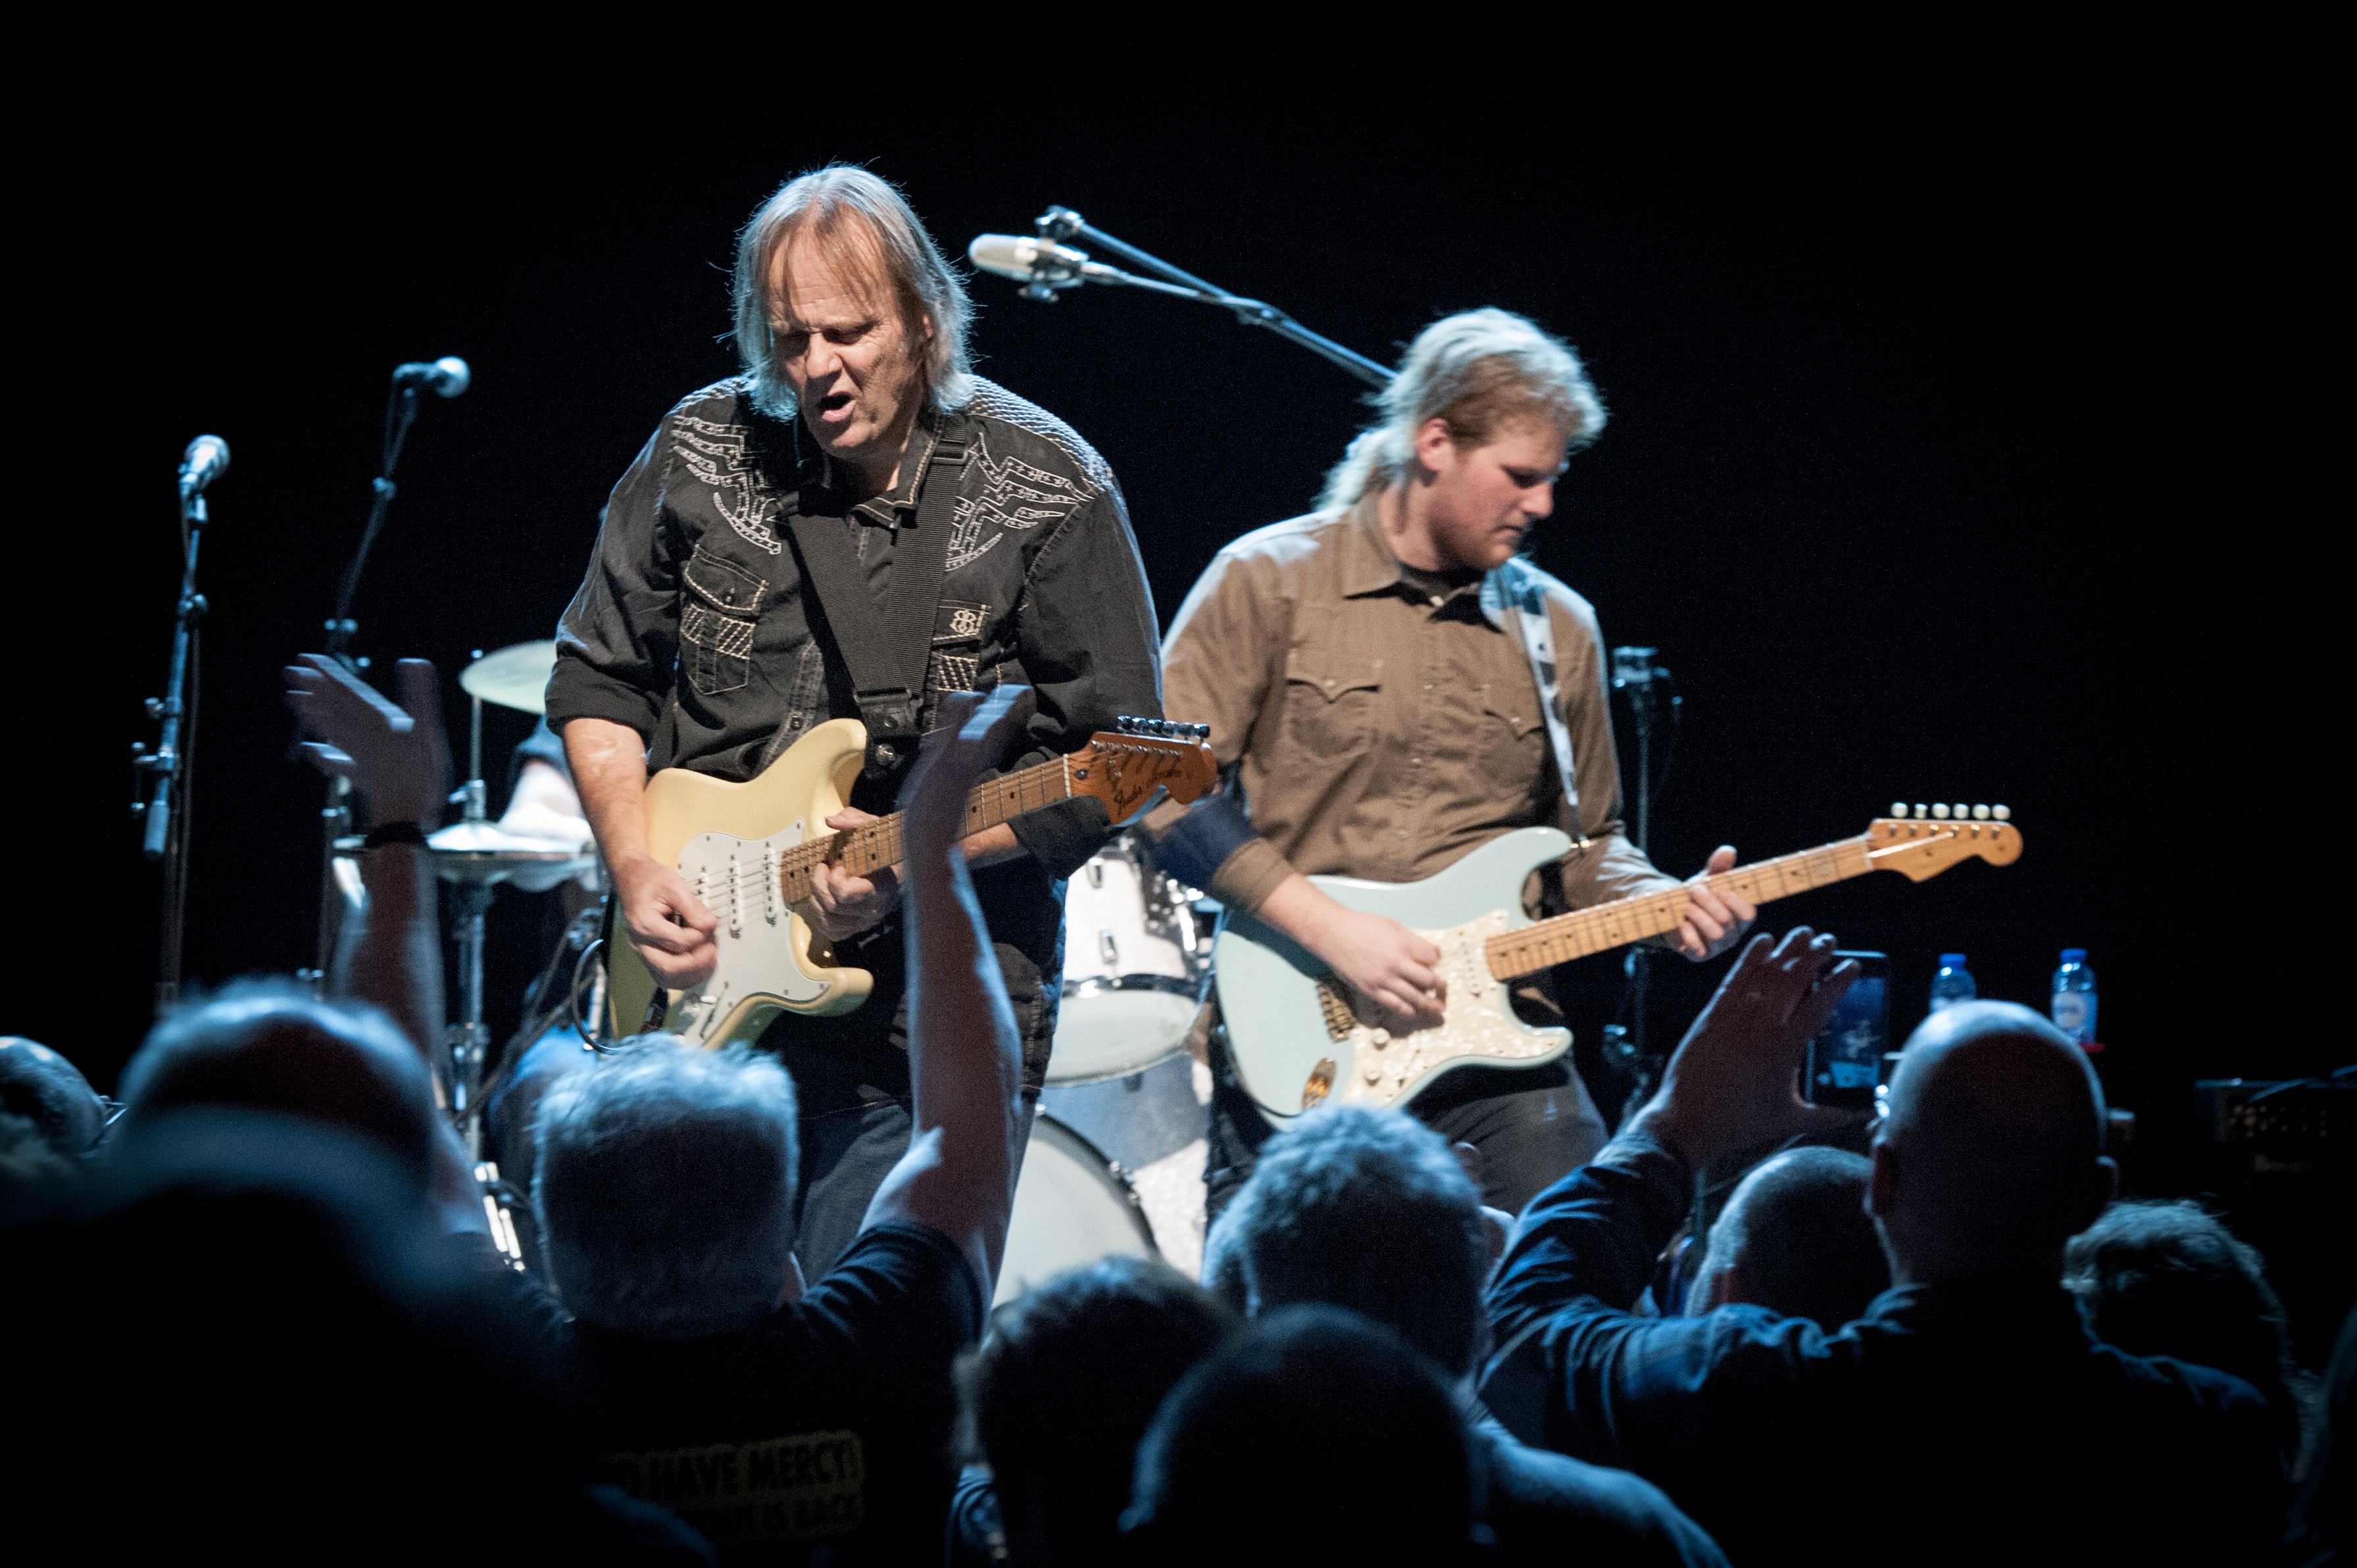 image of Walter Trout on stage by Marco van Rooijen